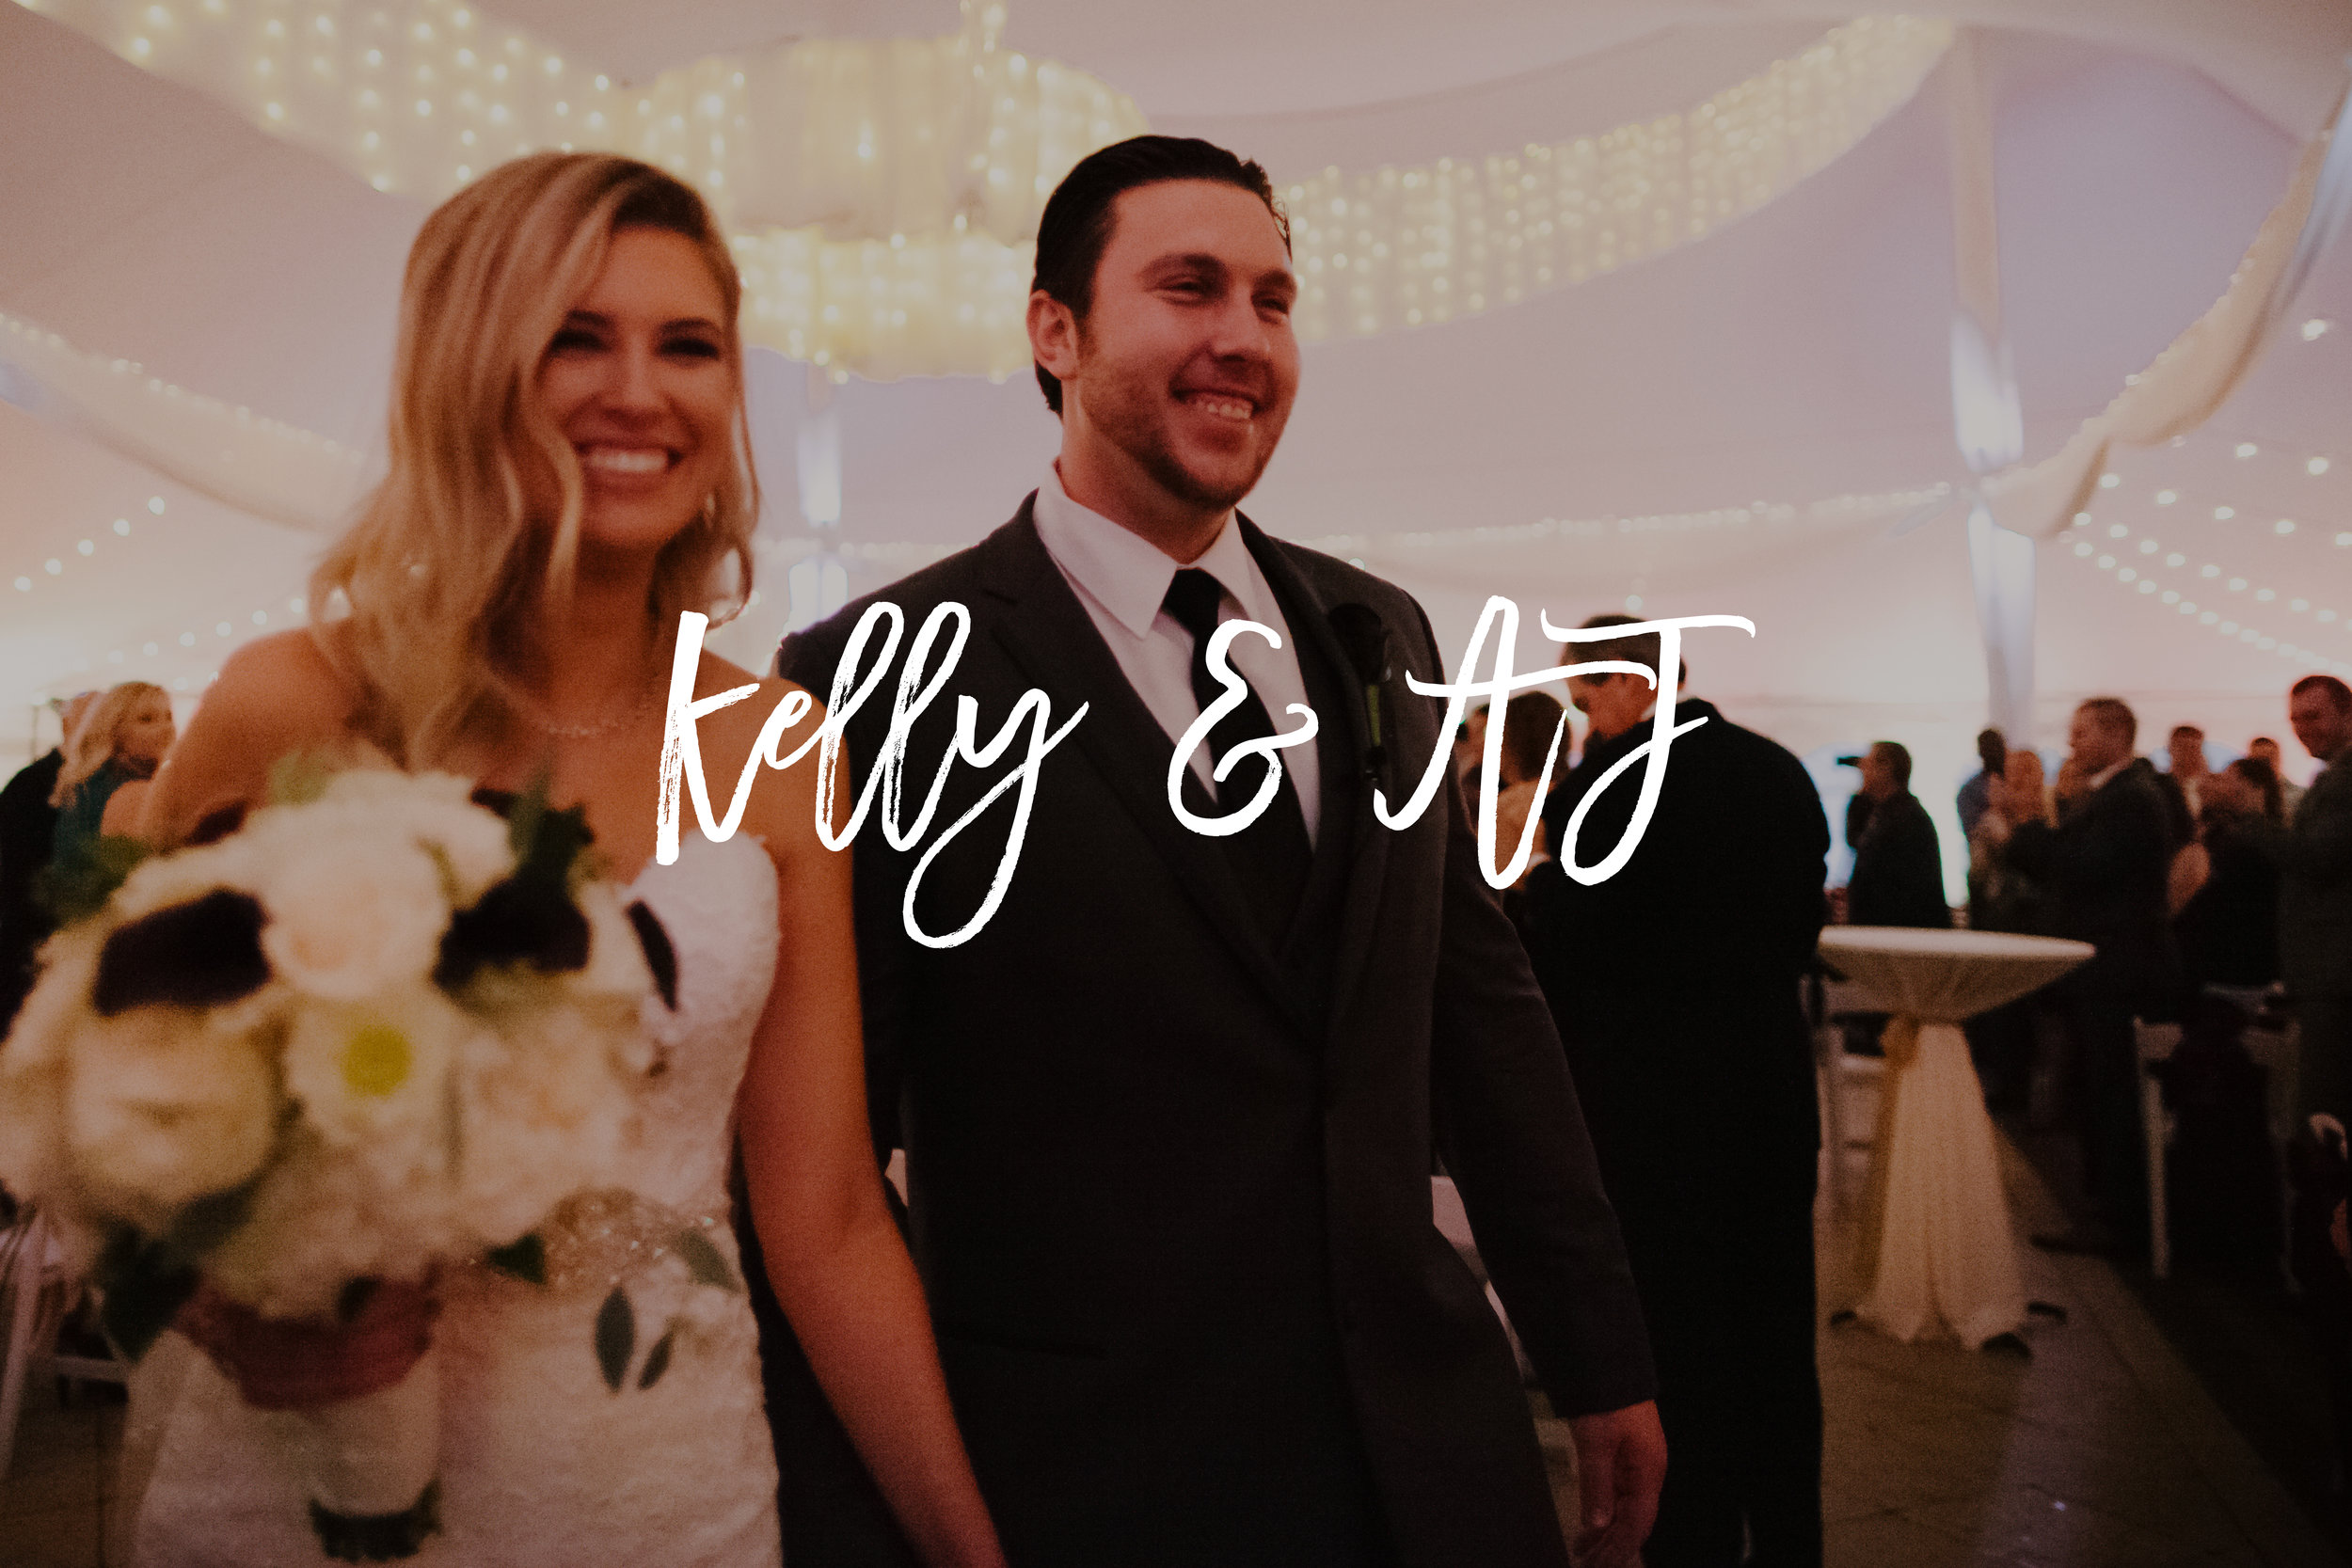 Kelly and AJ Wedding Photos Button.jpg